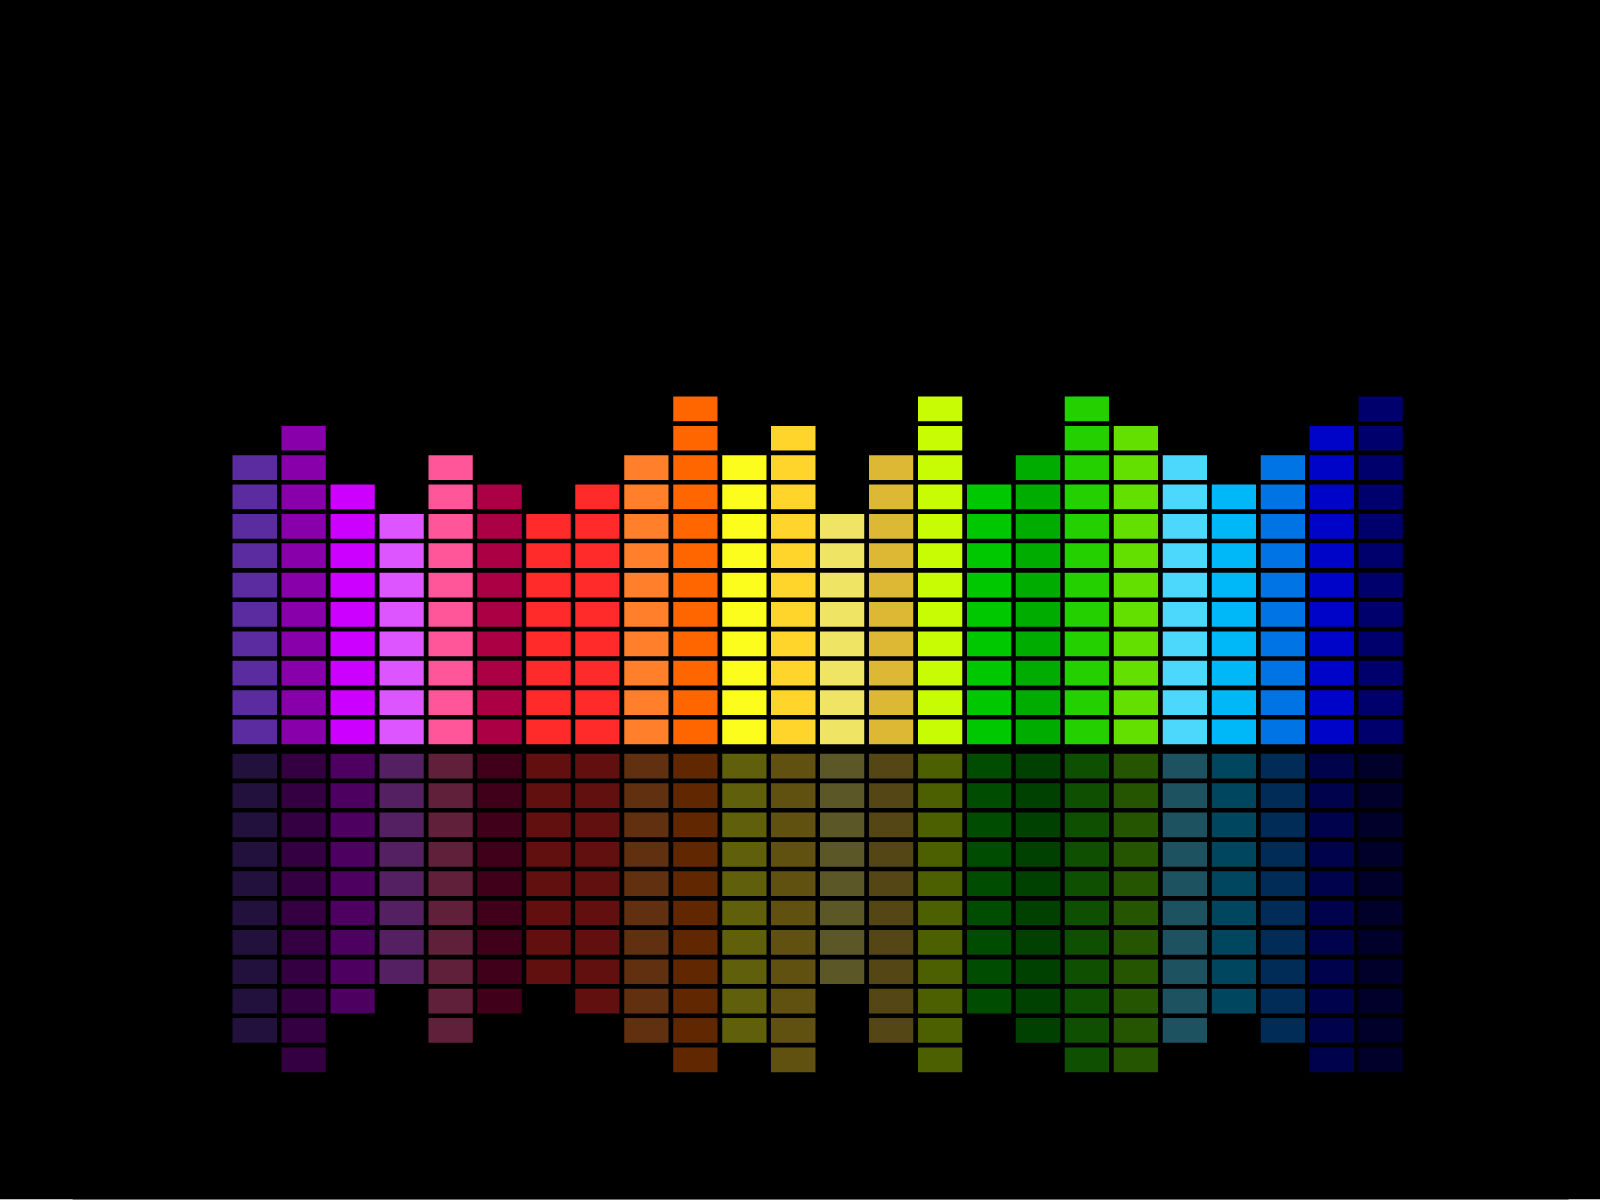 Music-Equalizer-Powerpoint-Backgrounds.jpg